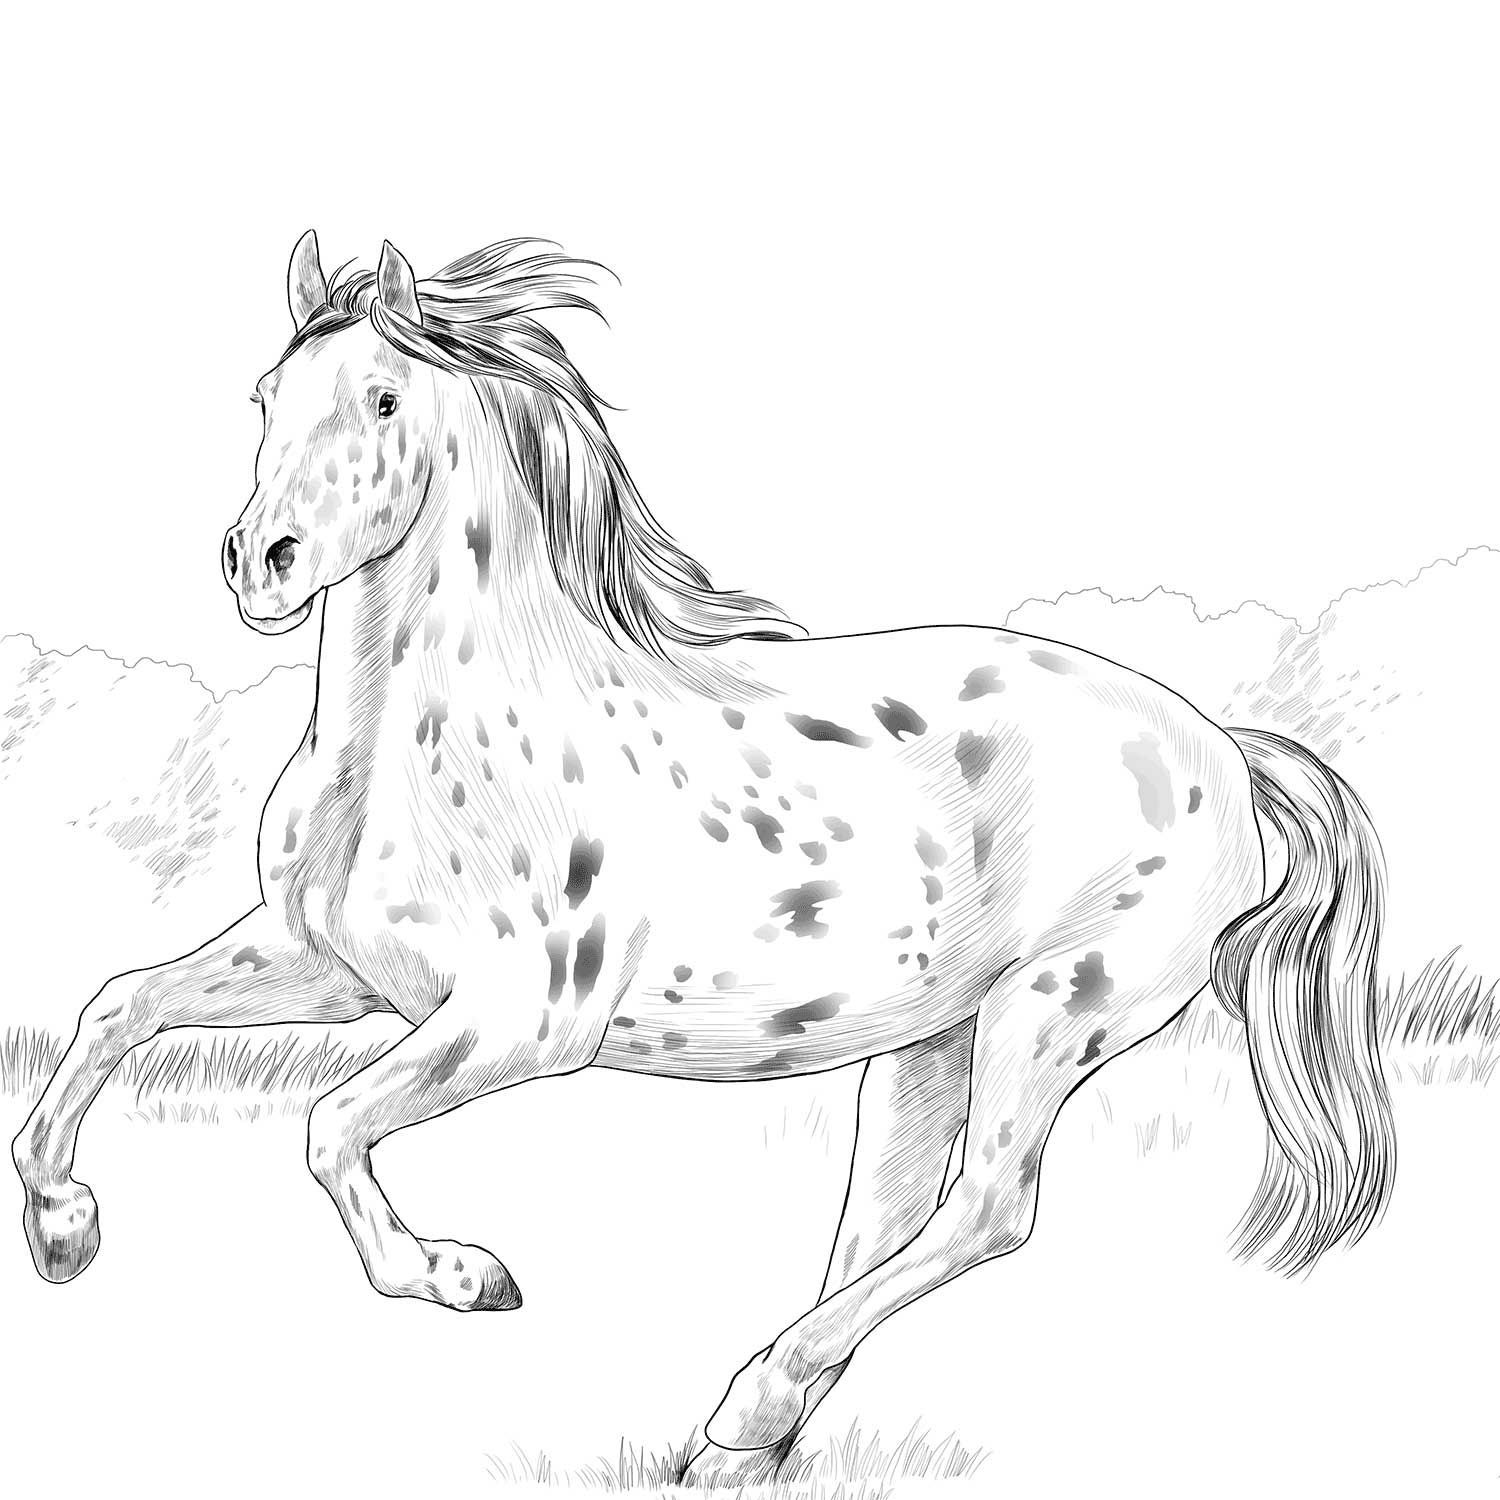 Knabstrupper Horse Coloring Page Horse Coloring Pages Horse Coloring Horse Coloring Books In 2021 Horse Coloring Pages Horse Coloring Animal Coloring Pages